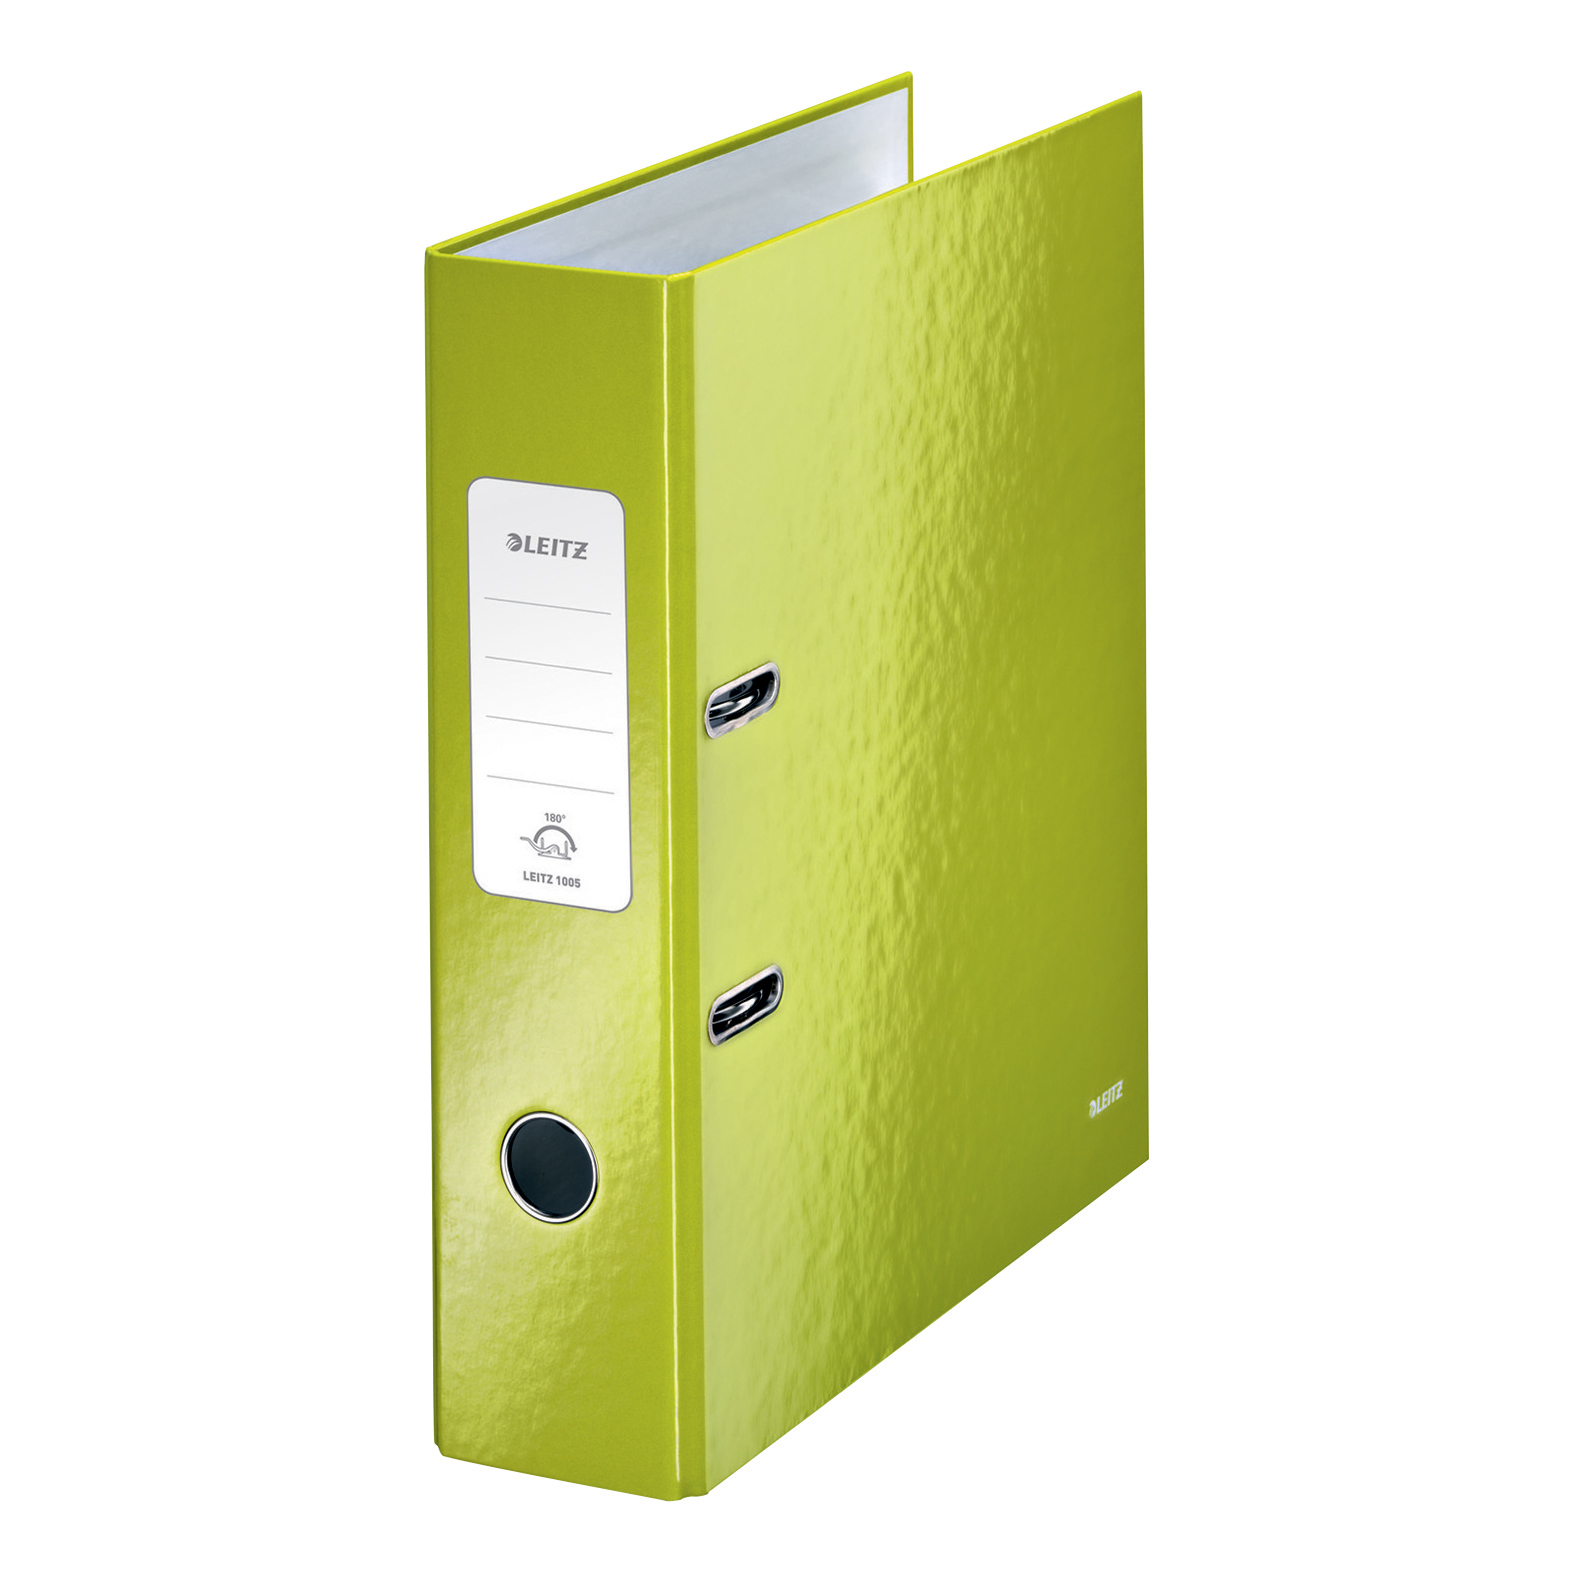 Leitz WOW Lever Arch File 80mm Spine for 600 Sheets A4 Green Ref 10050064 [Pack 10] [COMPETITION]